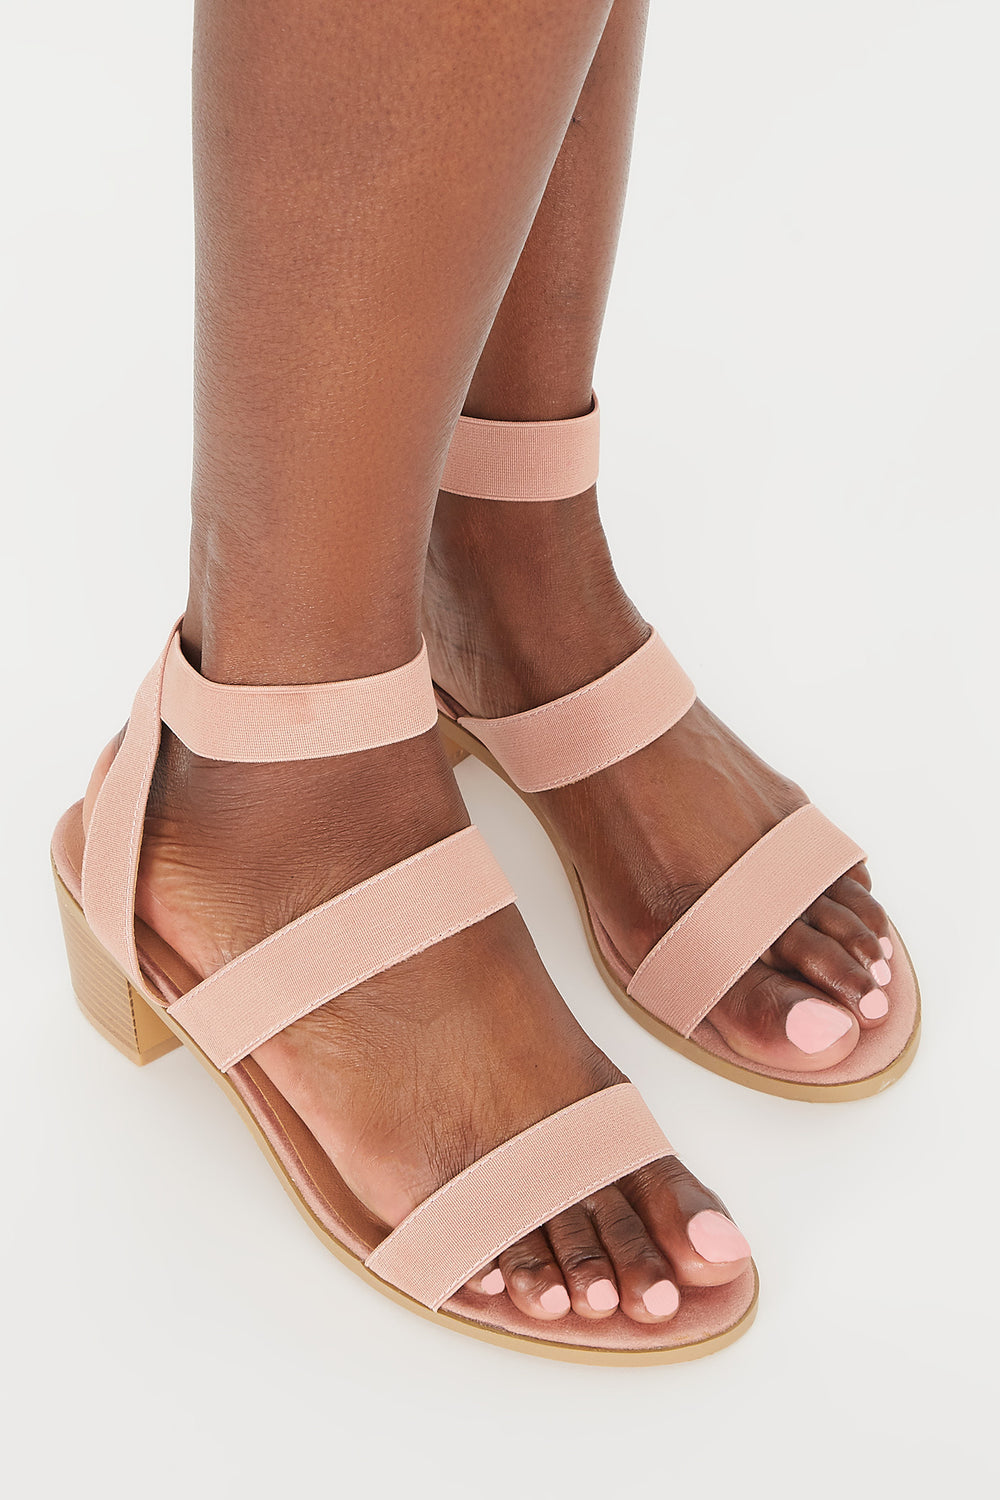 Triple Band Mid Block Heel Sandal Light Pink